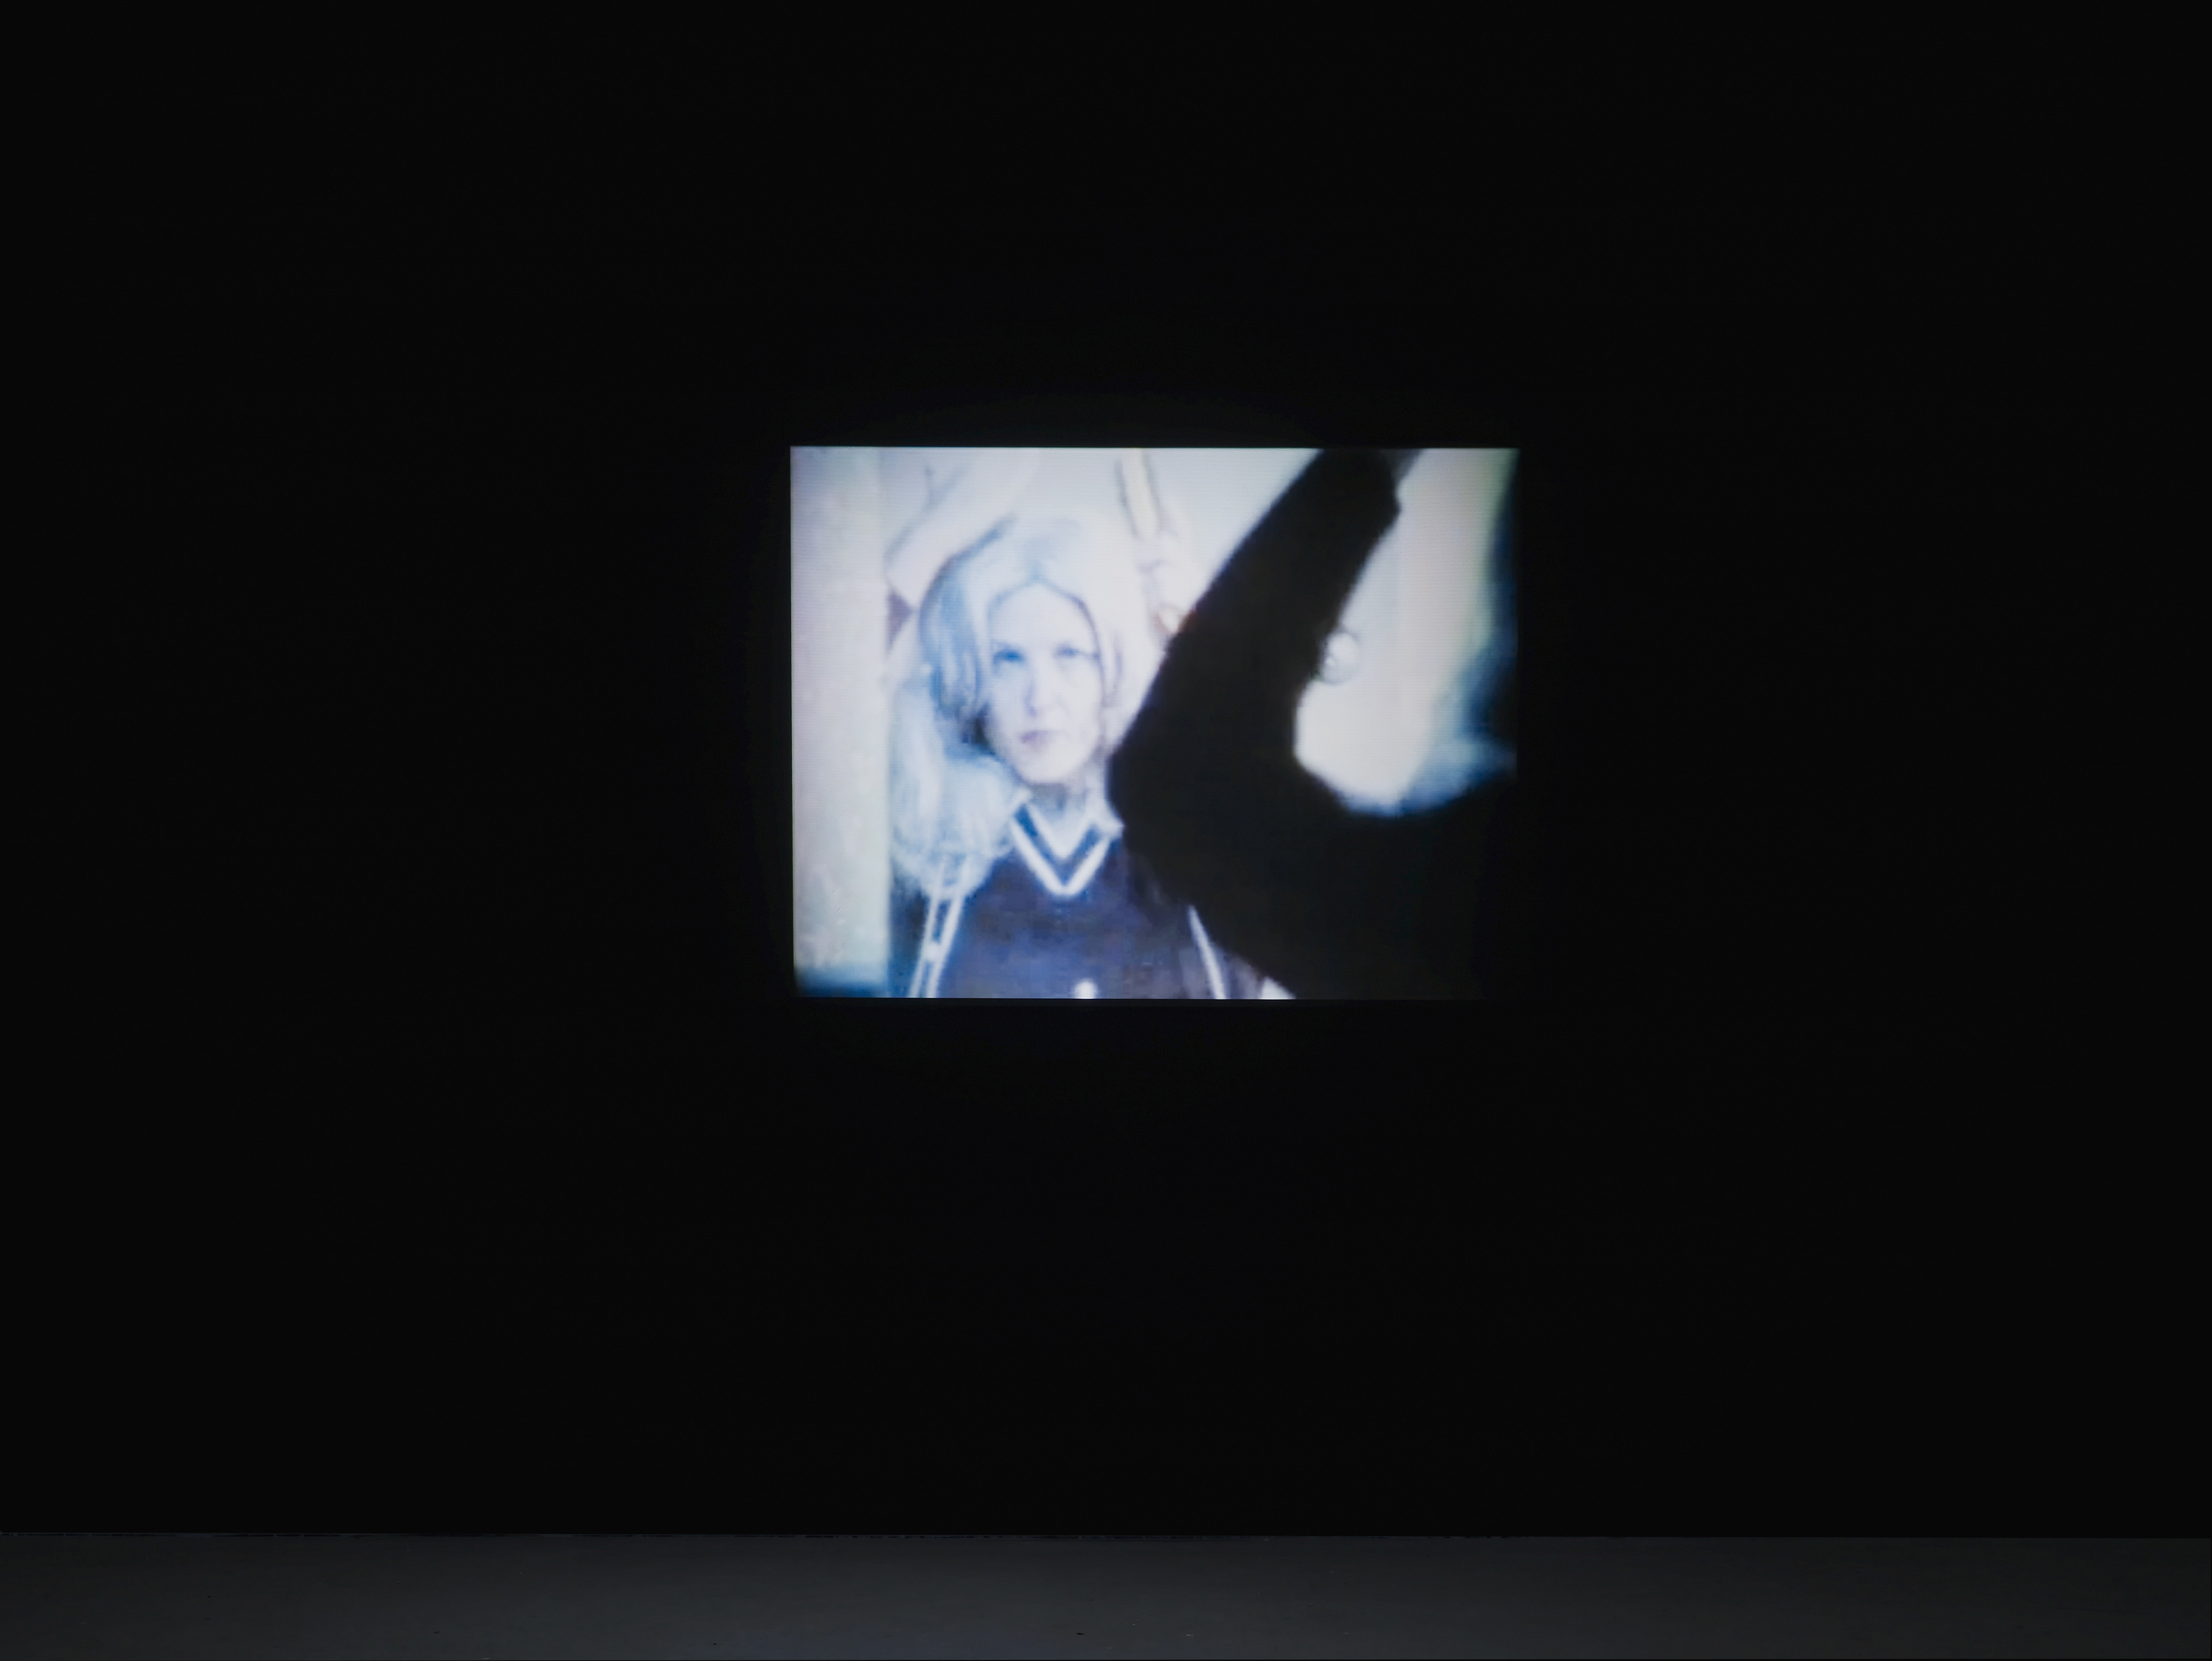 Installation view. Lynn turning into Roberta , Lynn Hershman Leeson